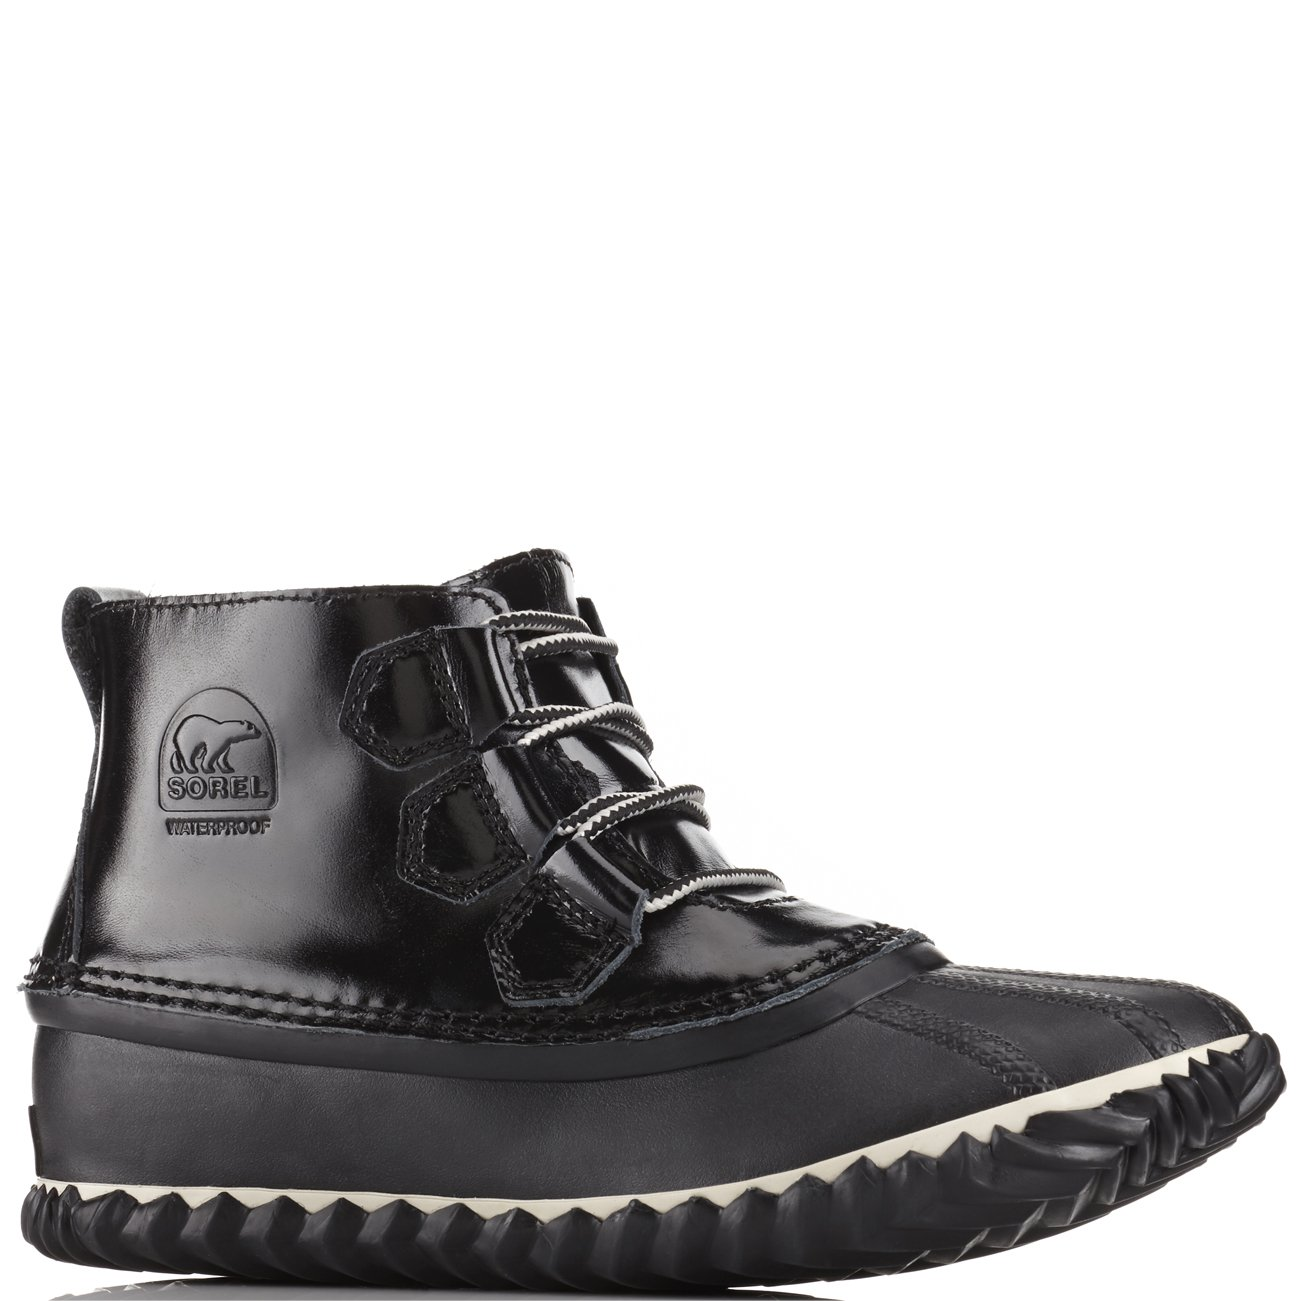 Sorel Women's Out N About Black/Noir Ankle-High Leather Rain Boot - 9M